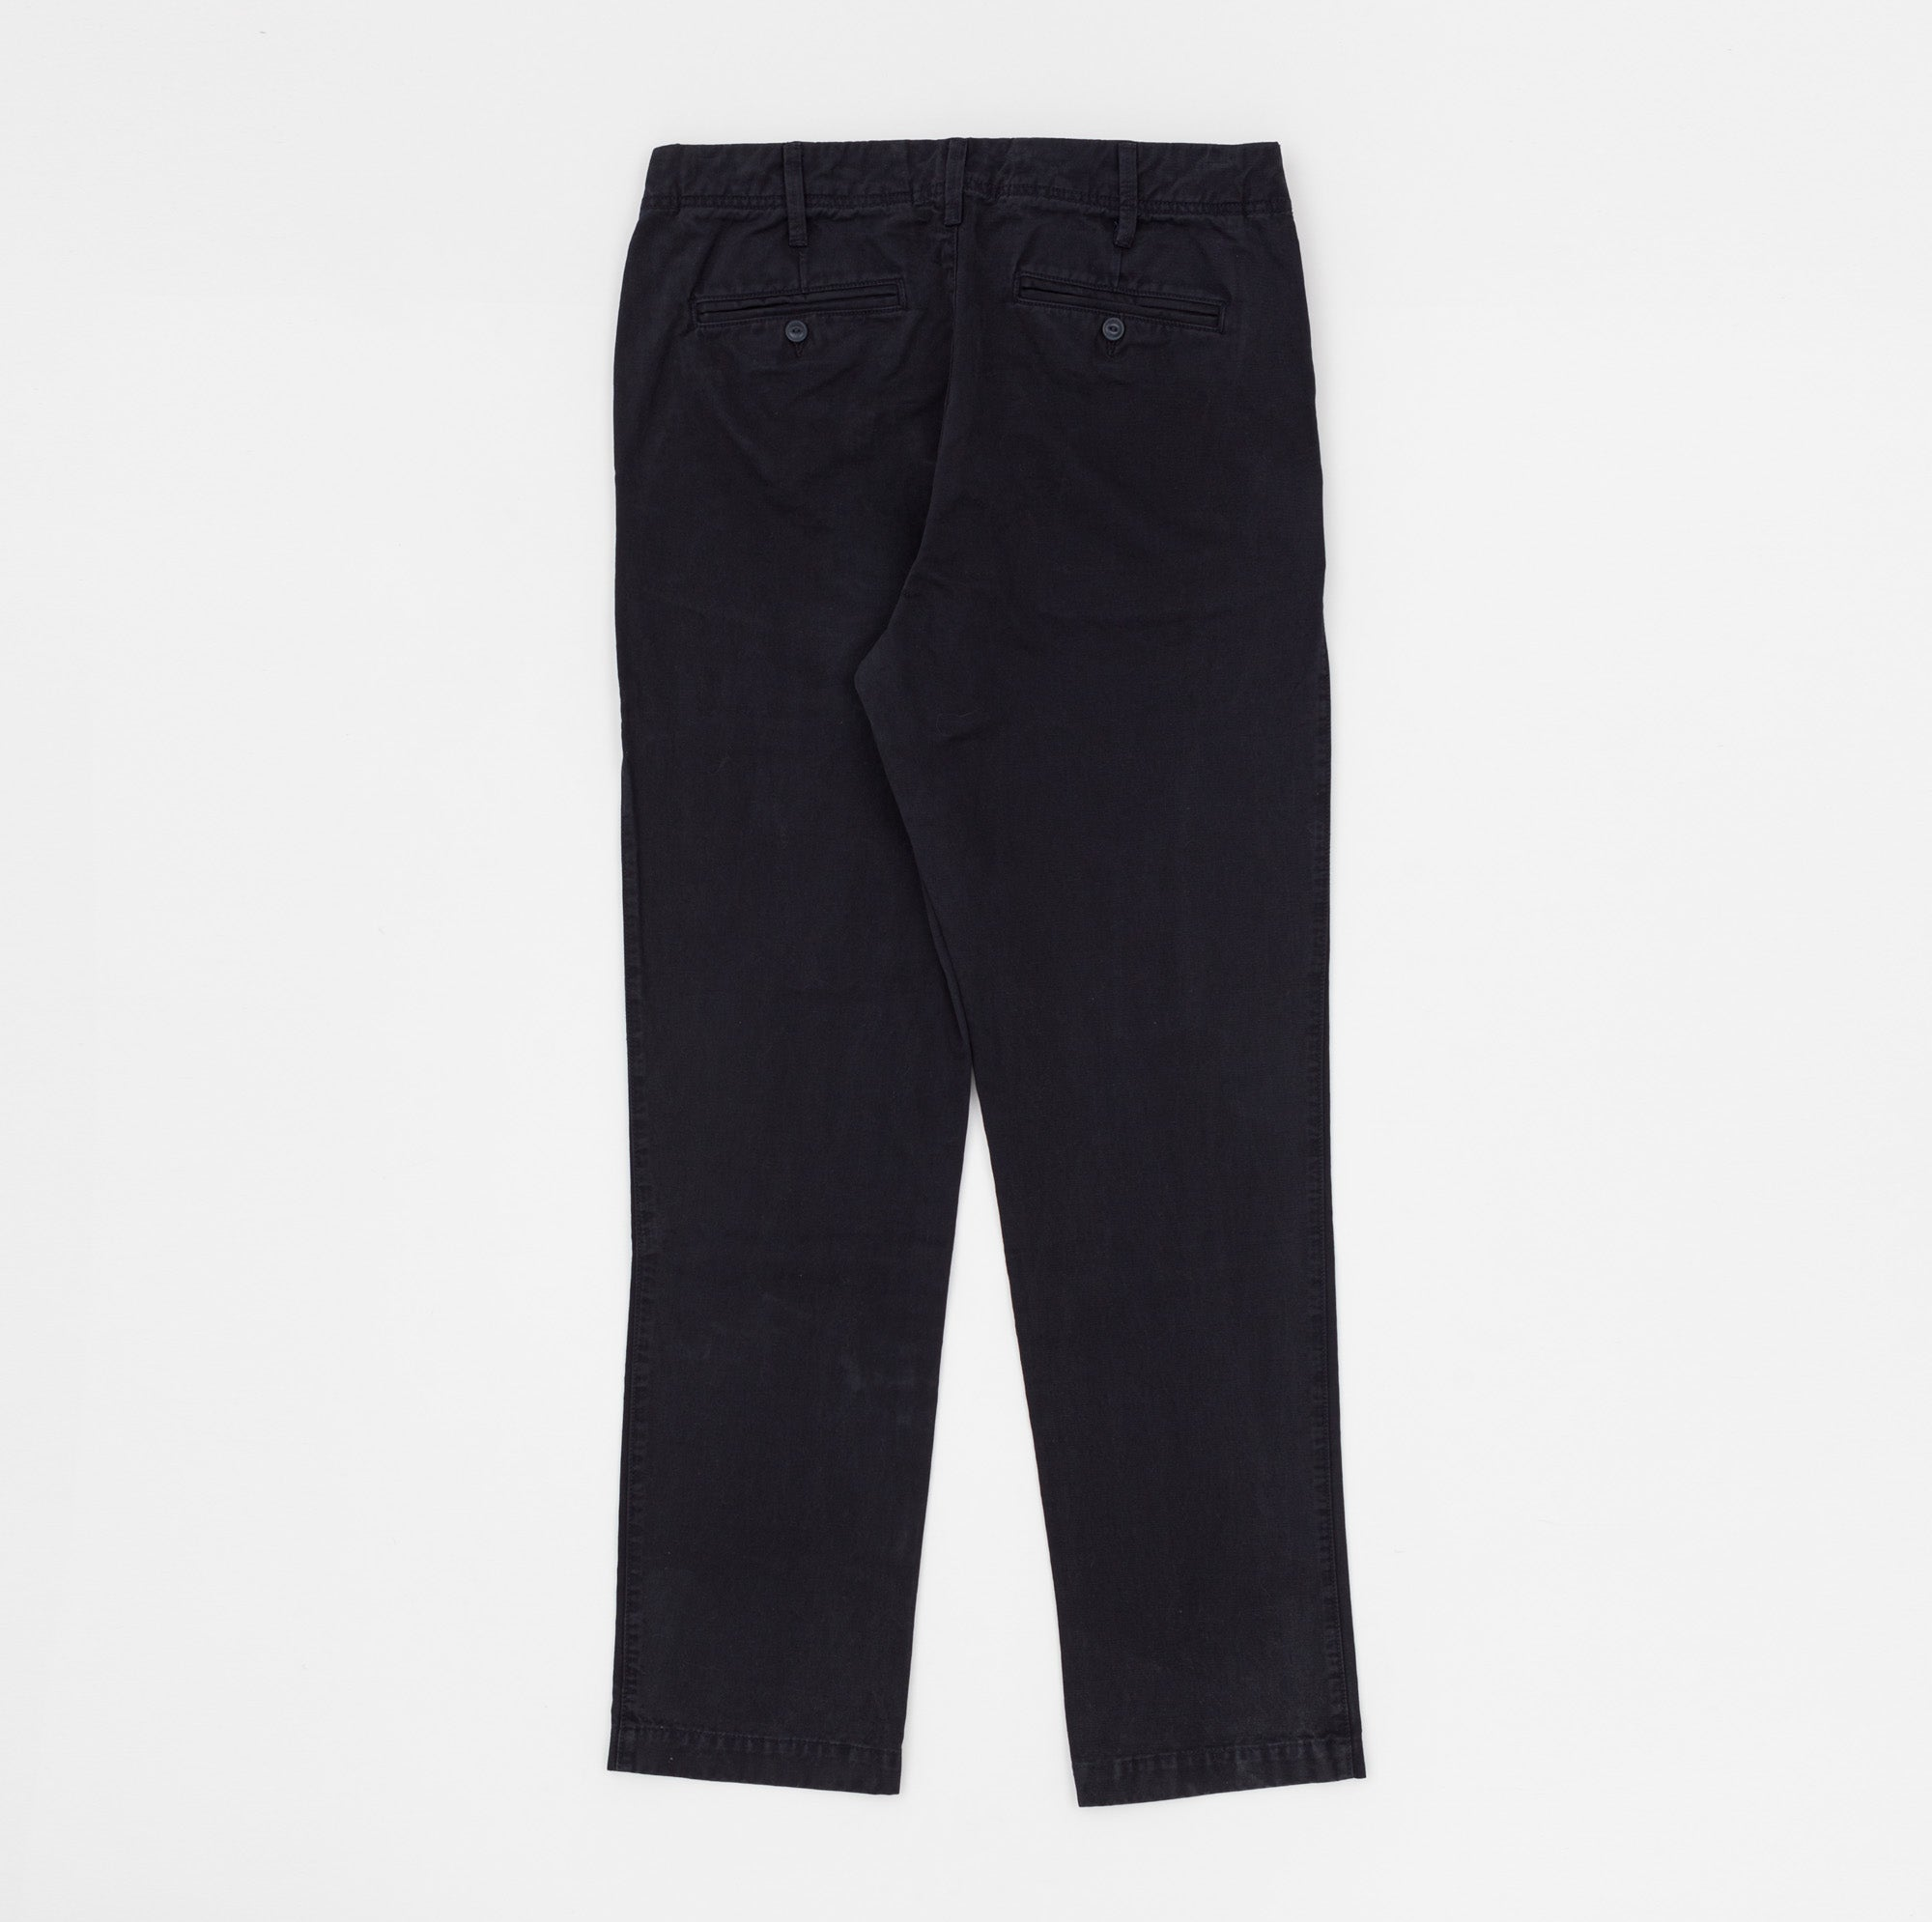 Bulldog Tapered Fit Twill Pants